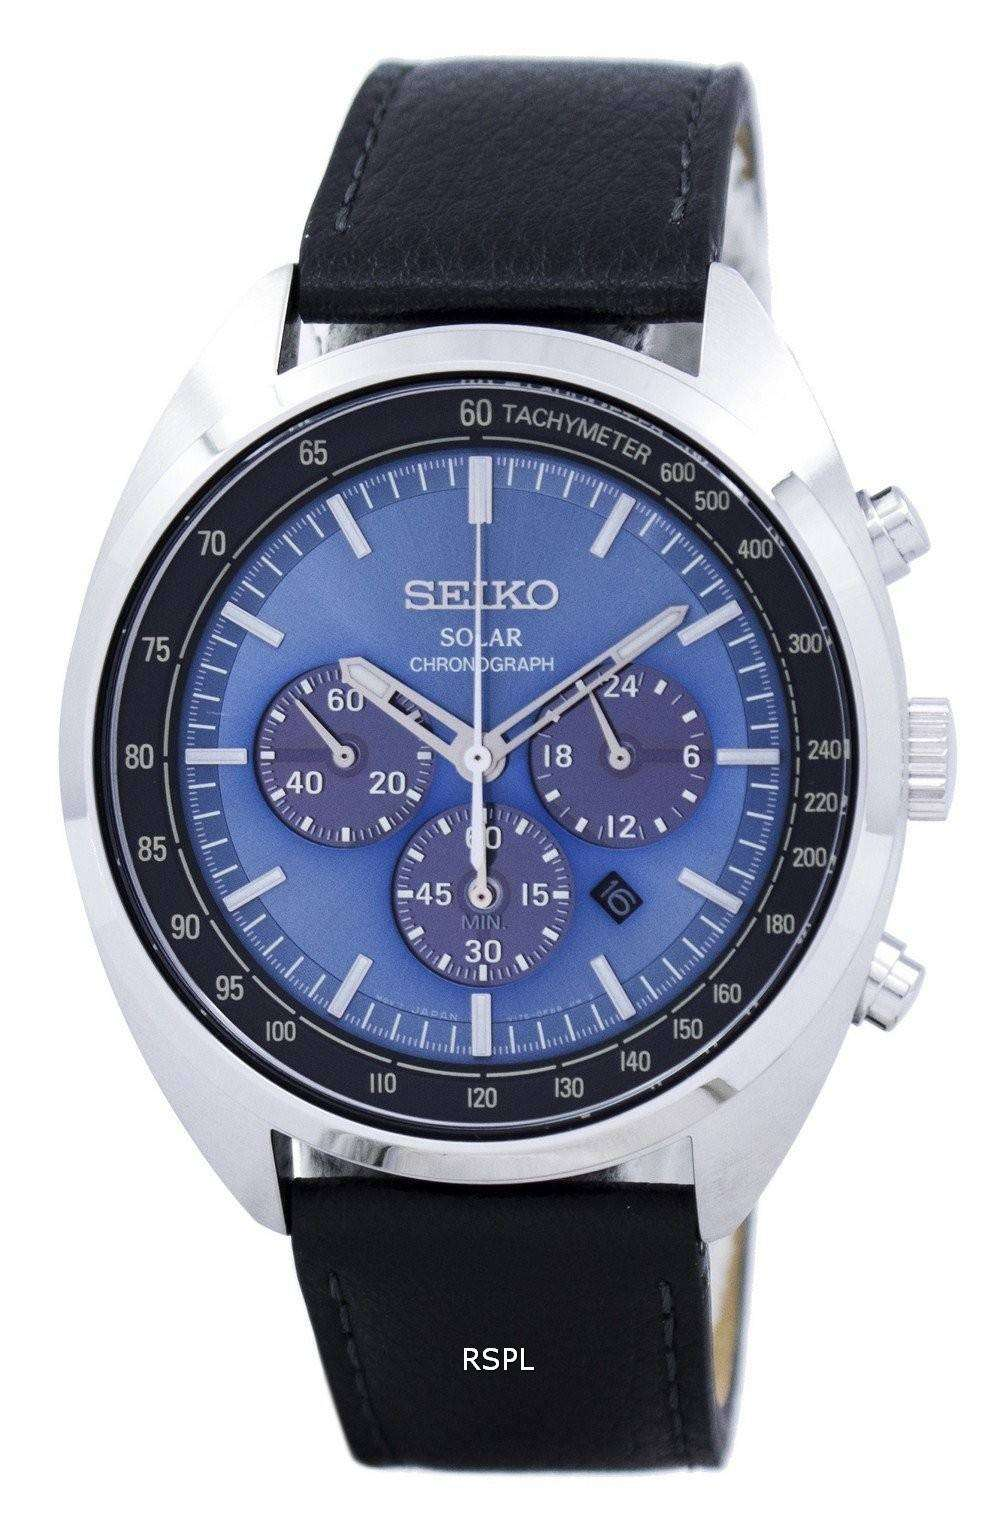 seiko solar chronograph tachymeter ssc625 ssc625p1 ssc625p. Black Bedroom Furniture Sets. Home Design Ideas